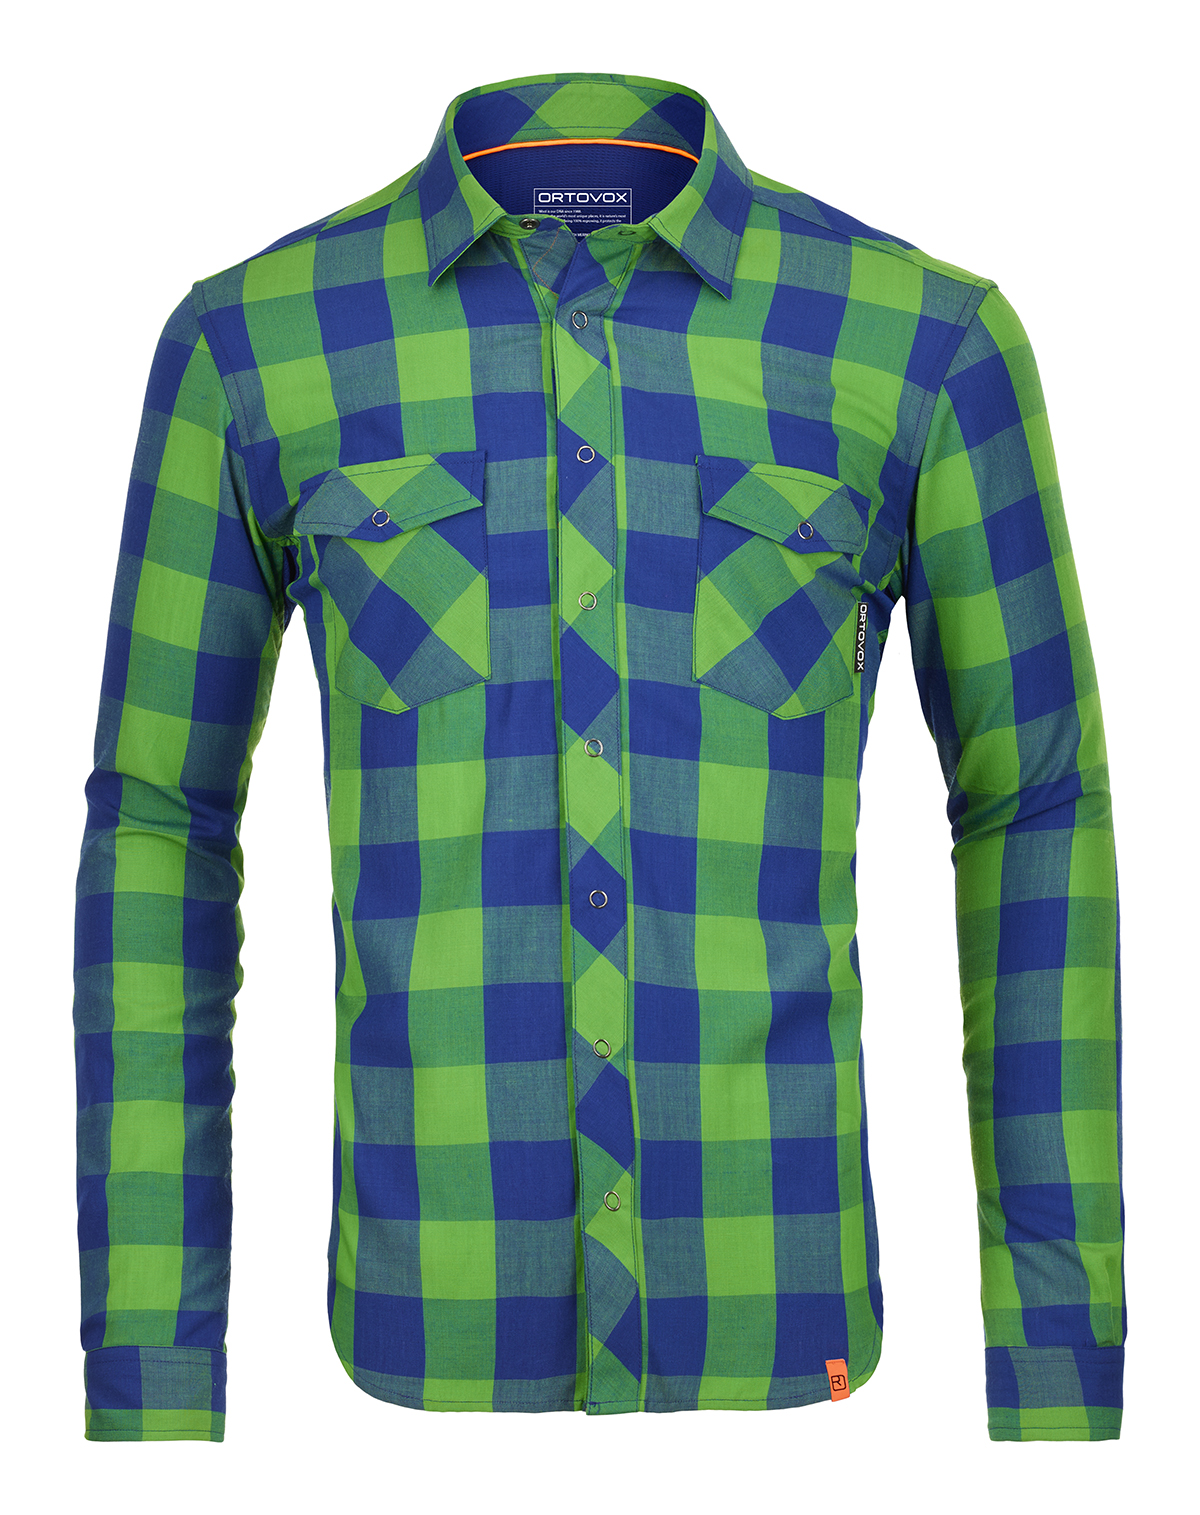 Ortovox Rock N Wool shirt .  Don't be fooled by the collar, this shirt is built for pure badassery -- high altitude, high speed, high exposure.  LINK